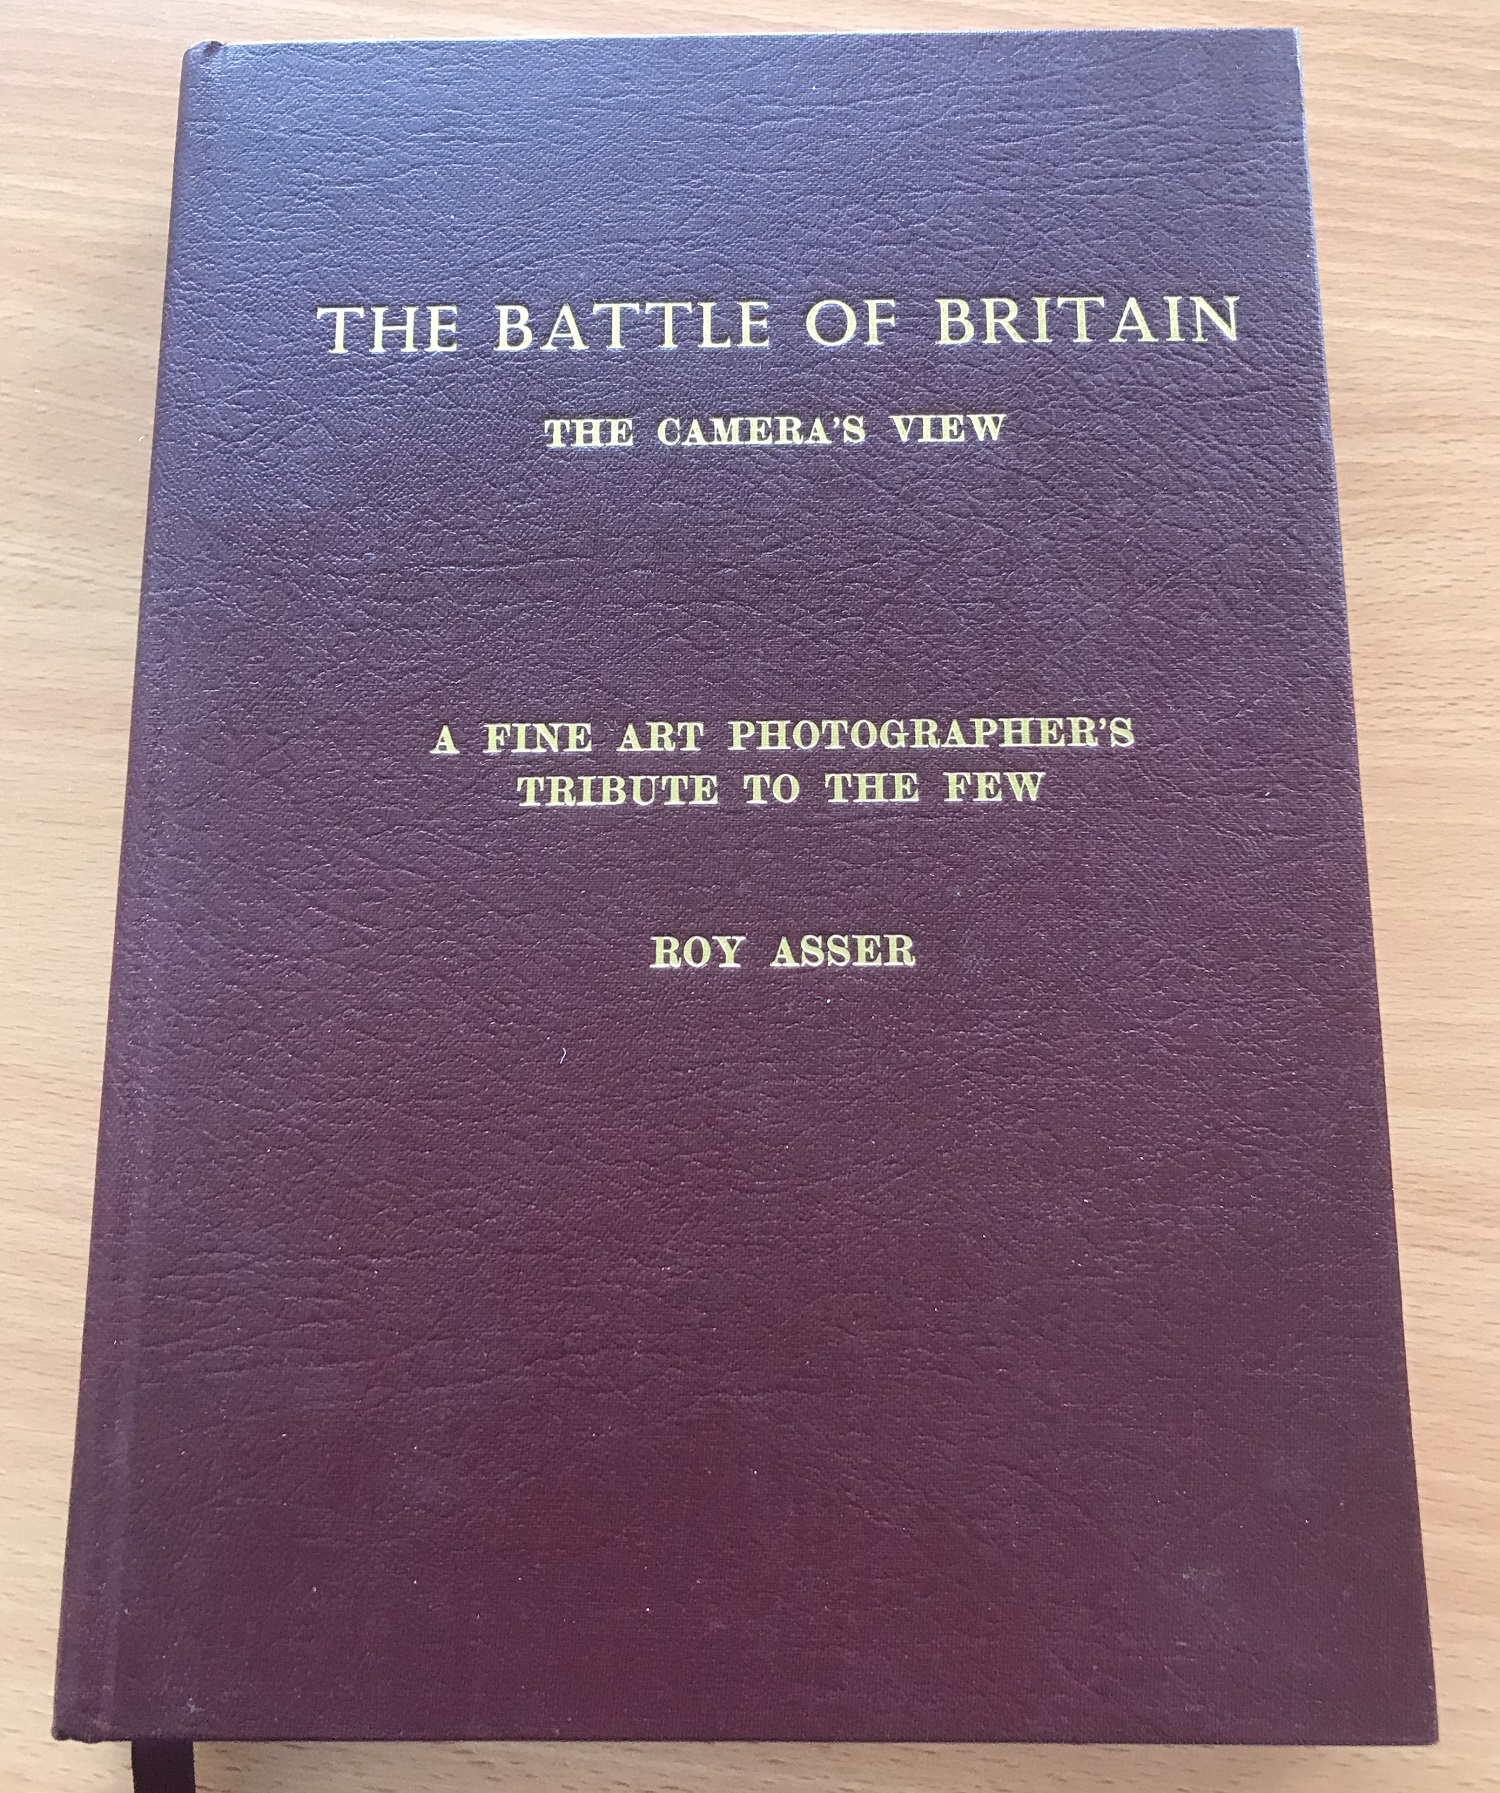 World War II The Battle of Britain The Cameras View A Fine Art Photographers Tribute to the Few by